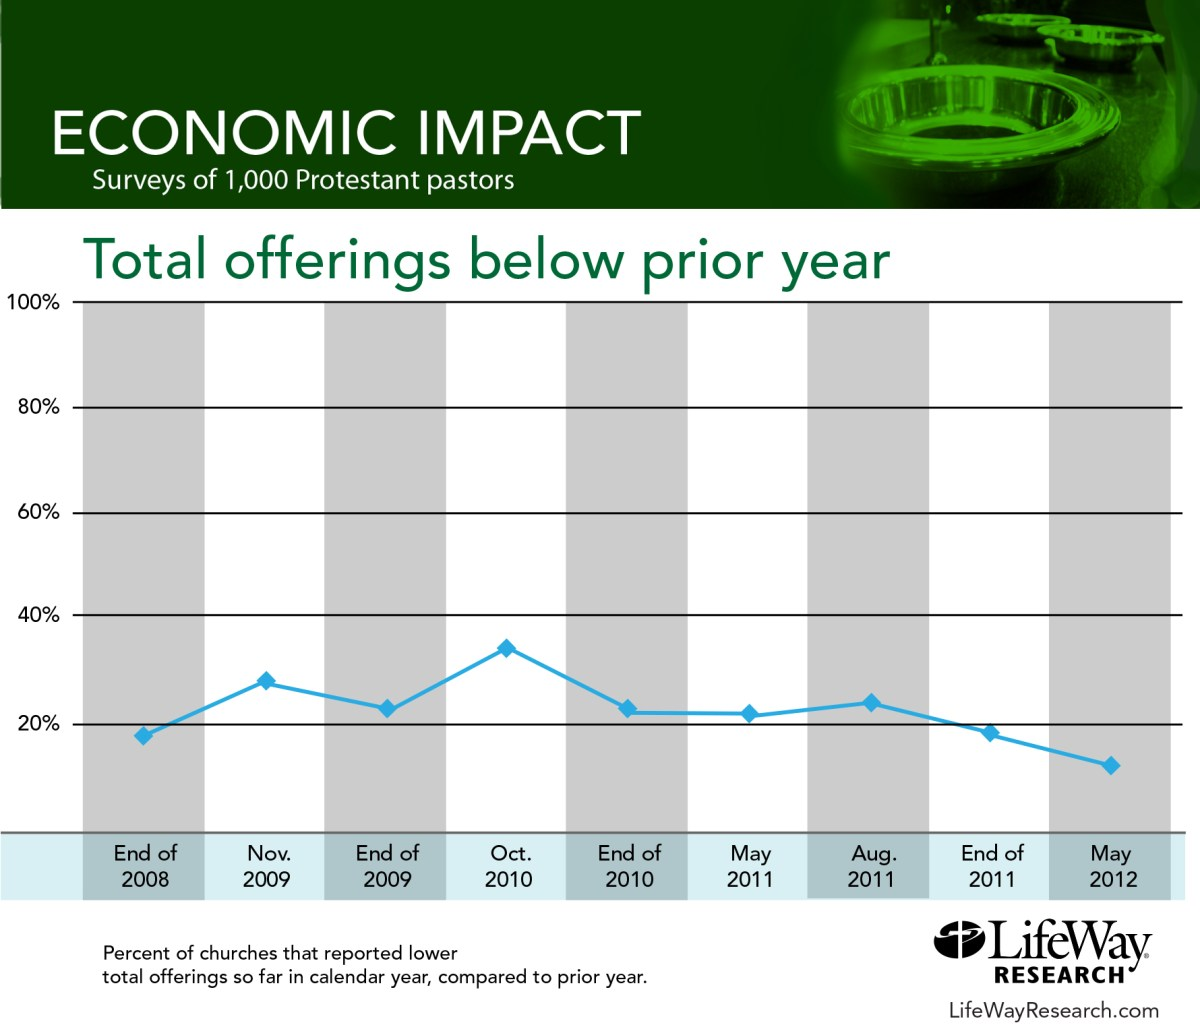 Are your total offerings below the prior year?